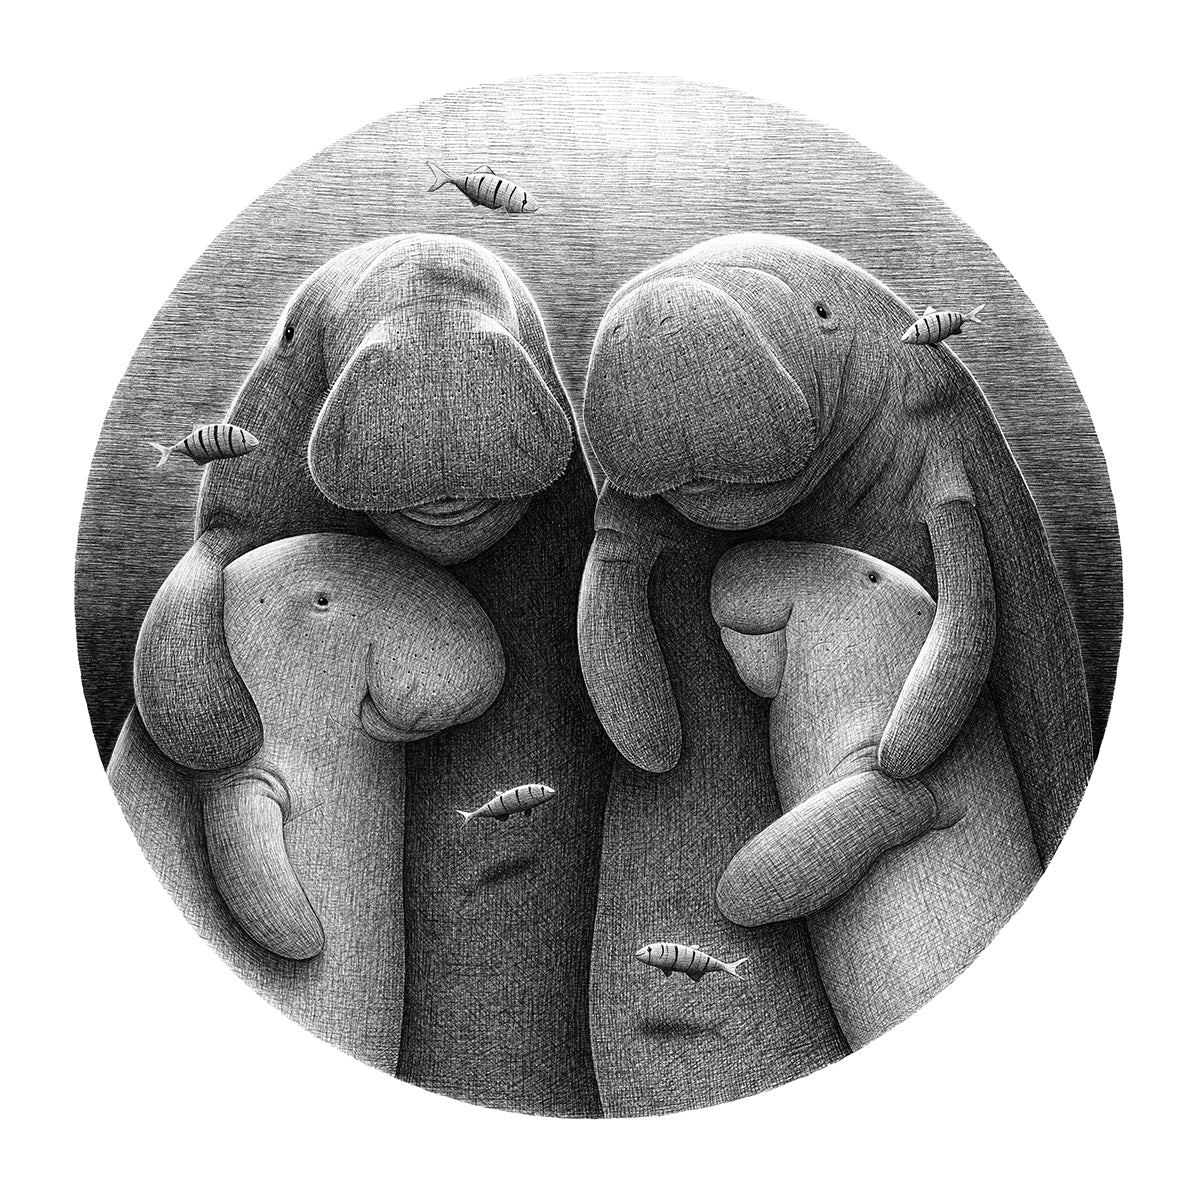 Dugong Family Illustration | Endangered Animals | Lucia Eggenhoffer | Eggenland